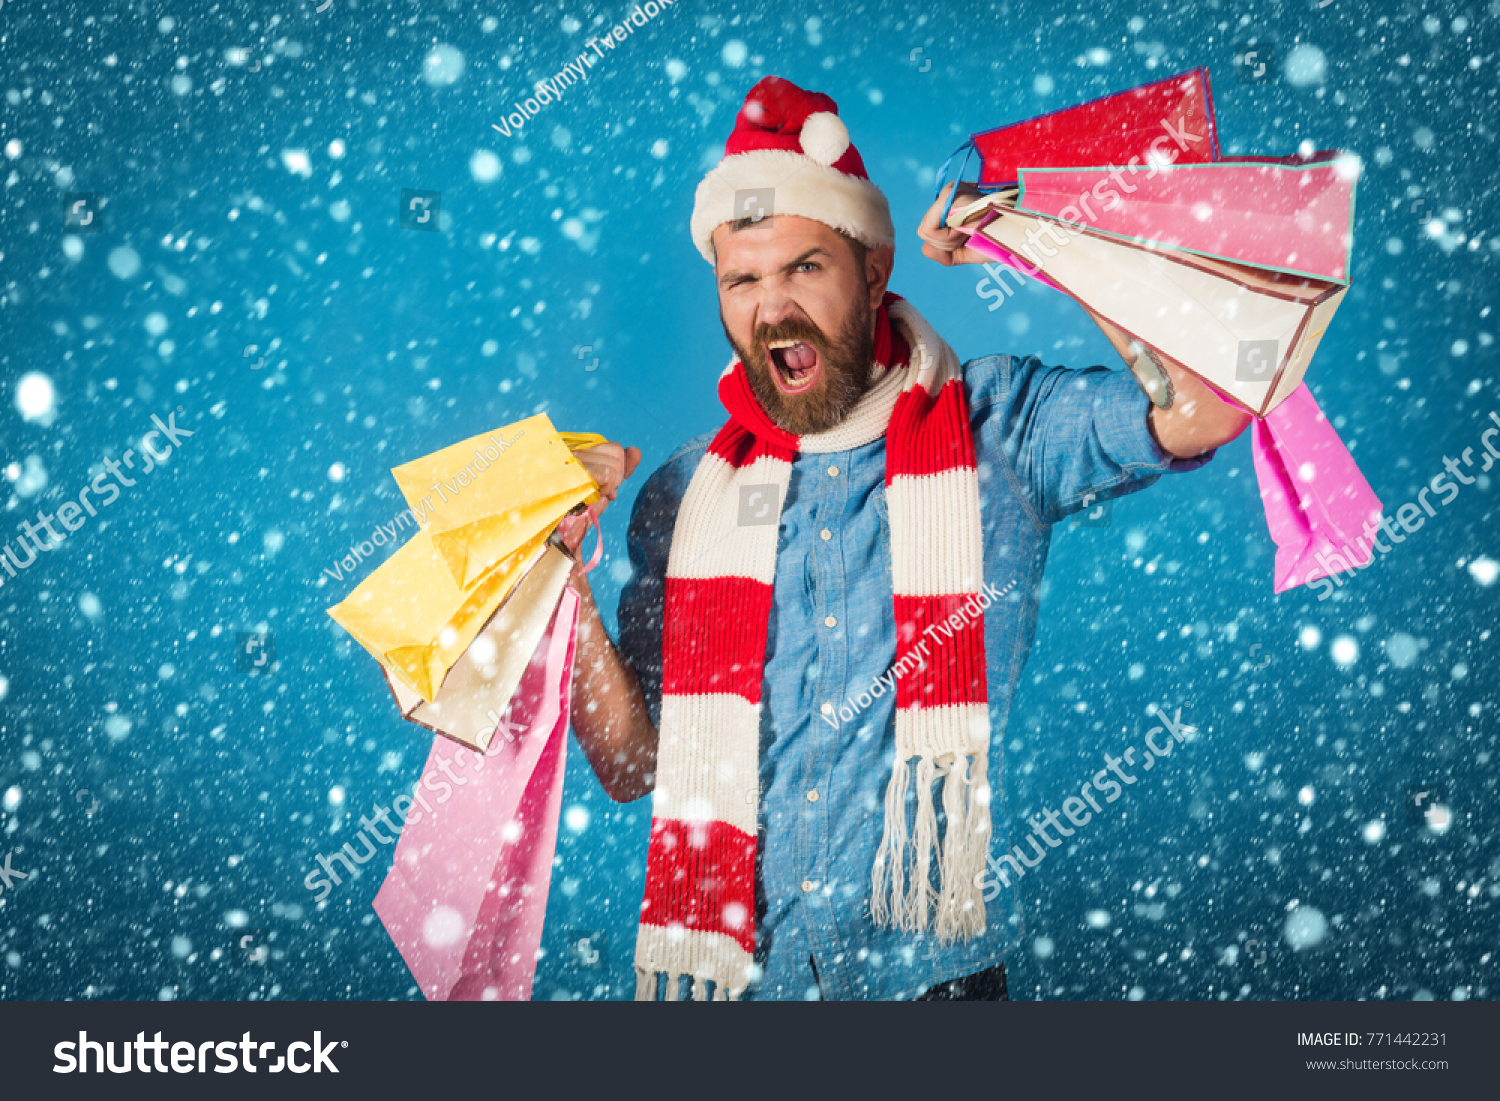 4e32c3082129f christmas new year snow concept Christmas hipster hold shopping bags on  blue background. Black friday